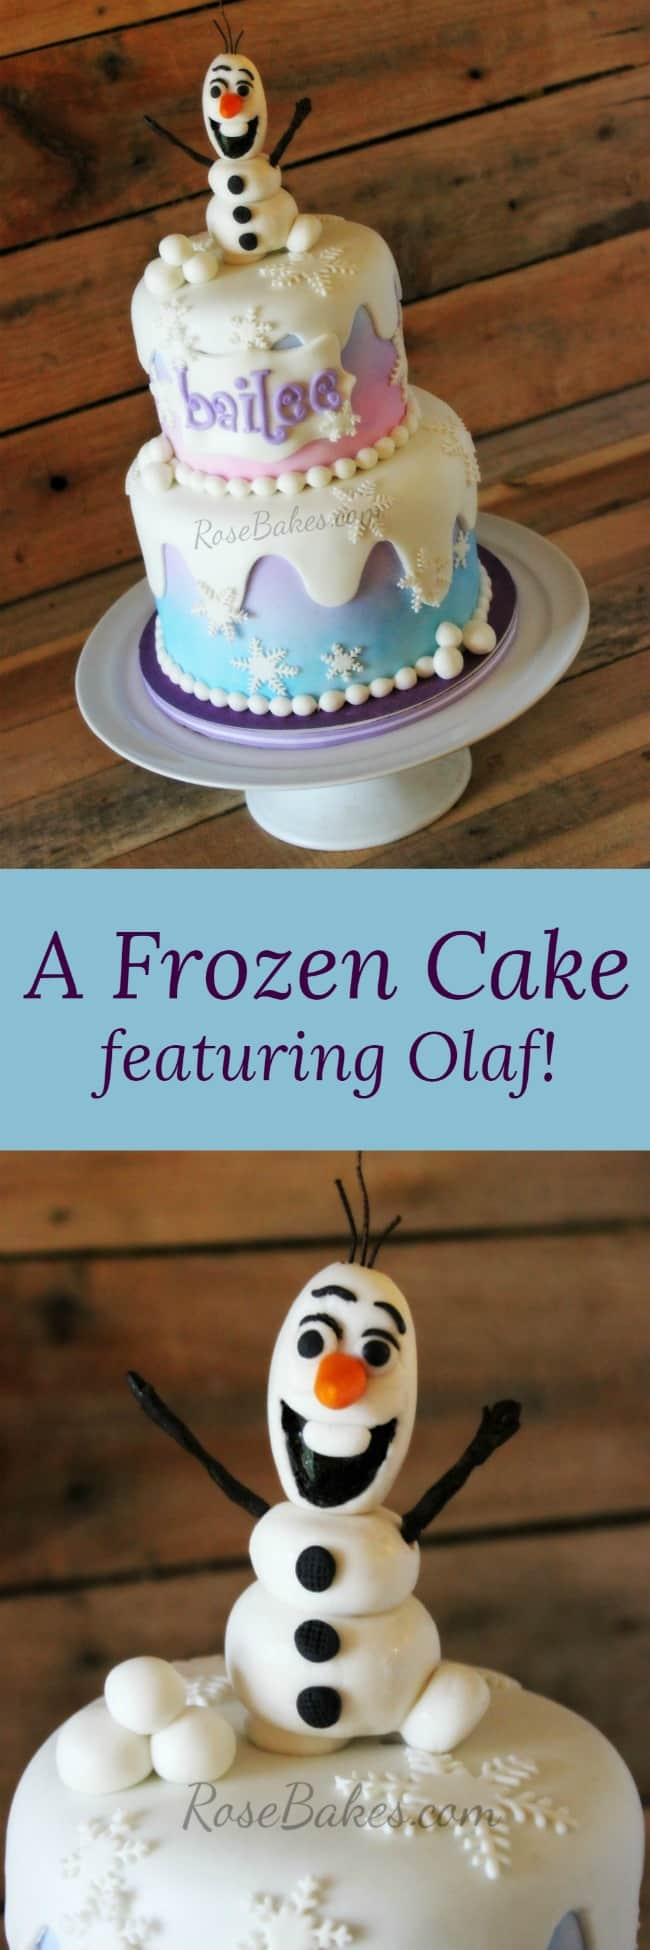 Frozen Cake featuring Olaf